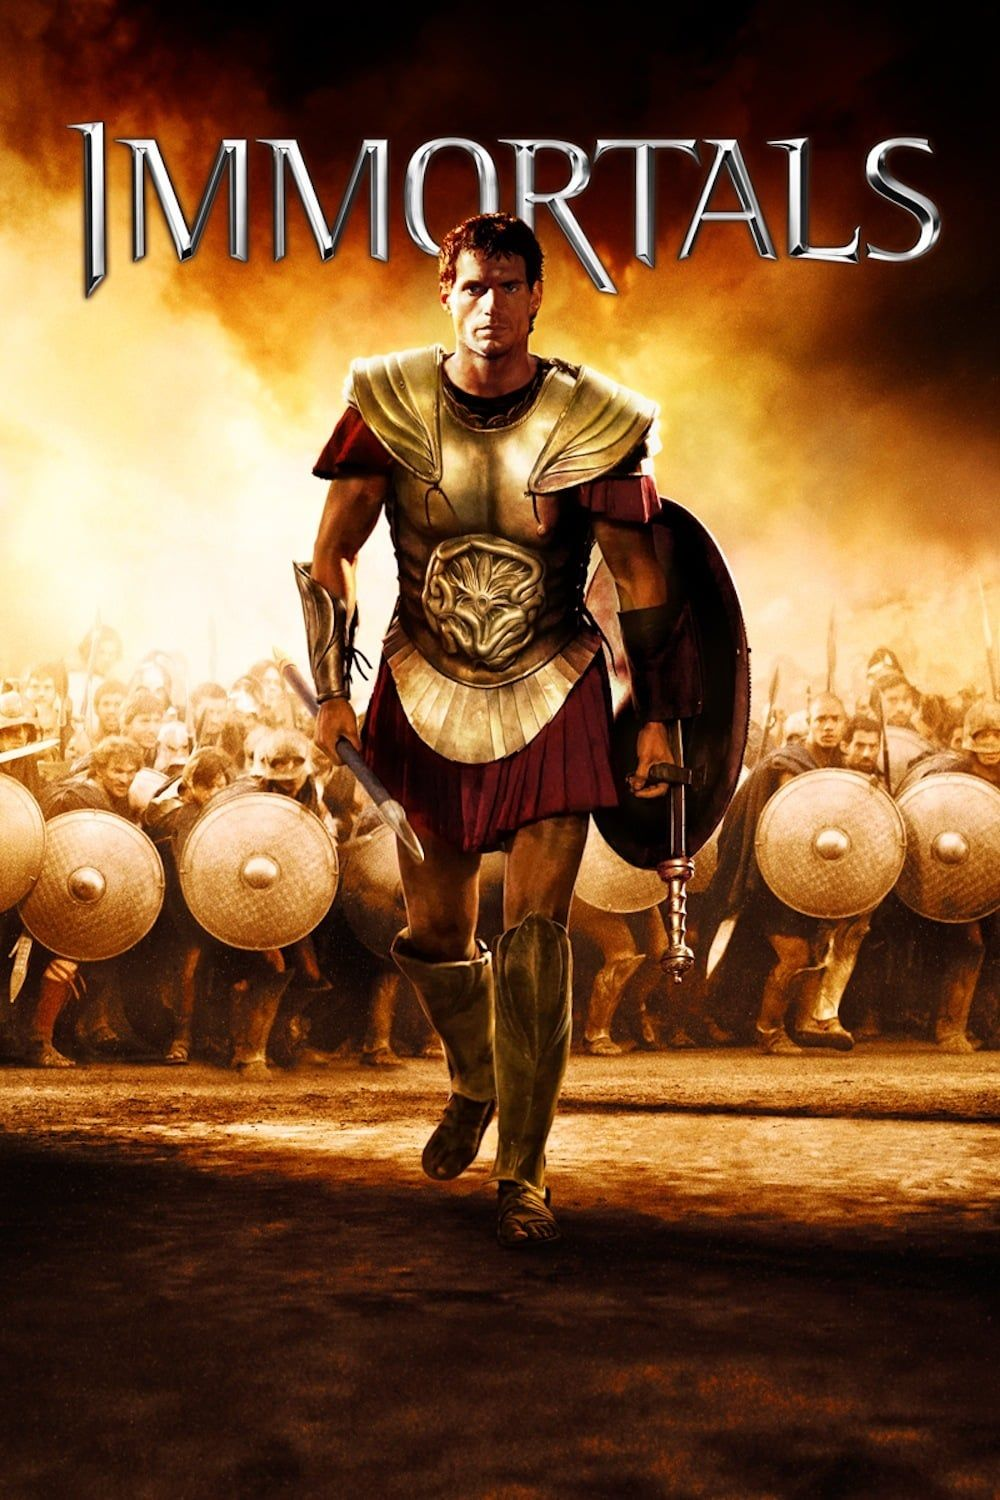 Immortals movie poster - #poster, #bestposter, #fullhd, #fullmovie, #hdvix,  #movie720pTheseus is a mortal man chosen by Zeus to lead the fight against  the ...